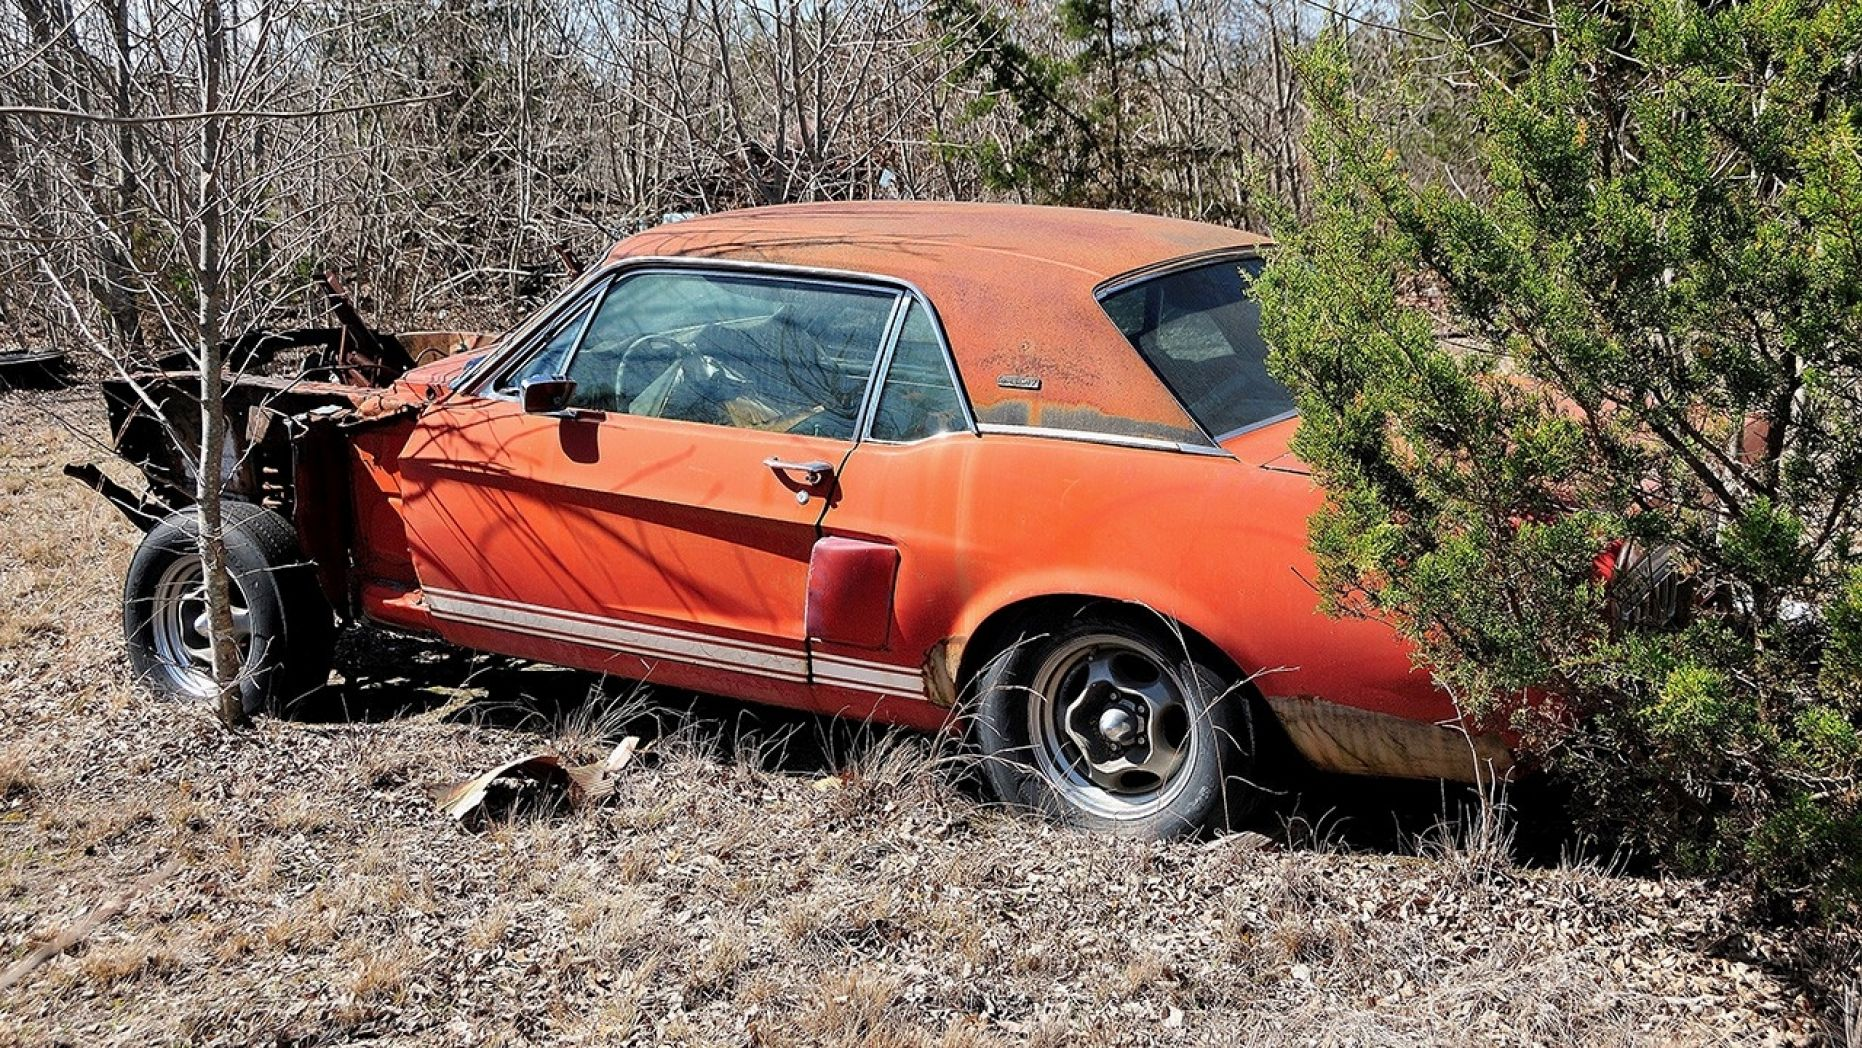 'Little Red' 1967 Ford Mustang Shelby GT500 found after 50 years, could be worth millions